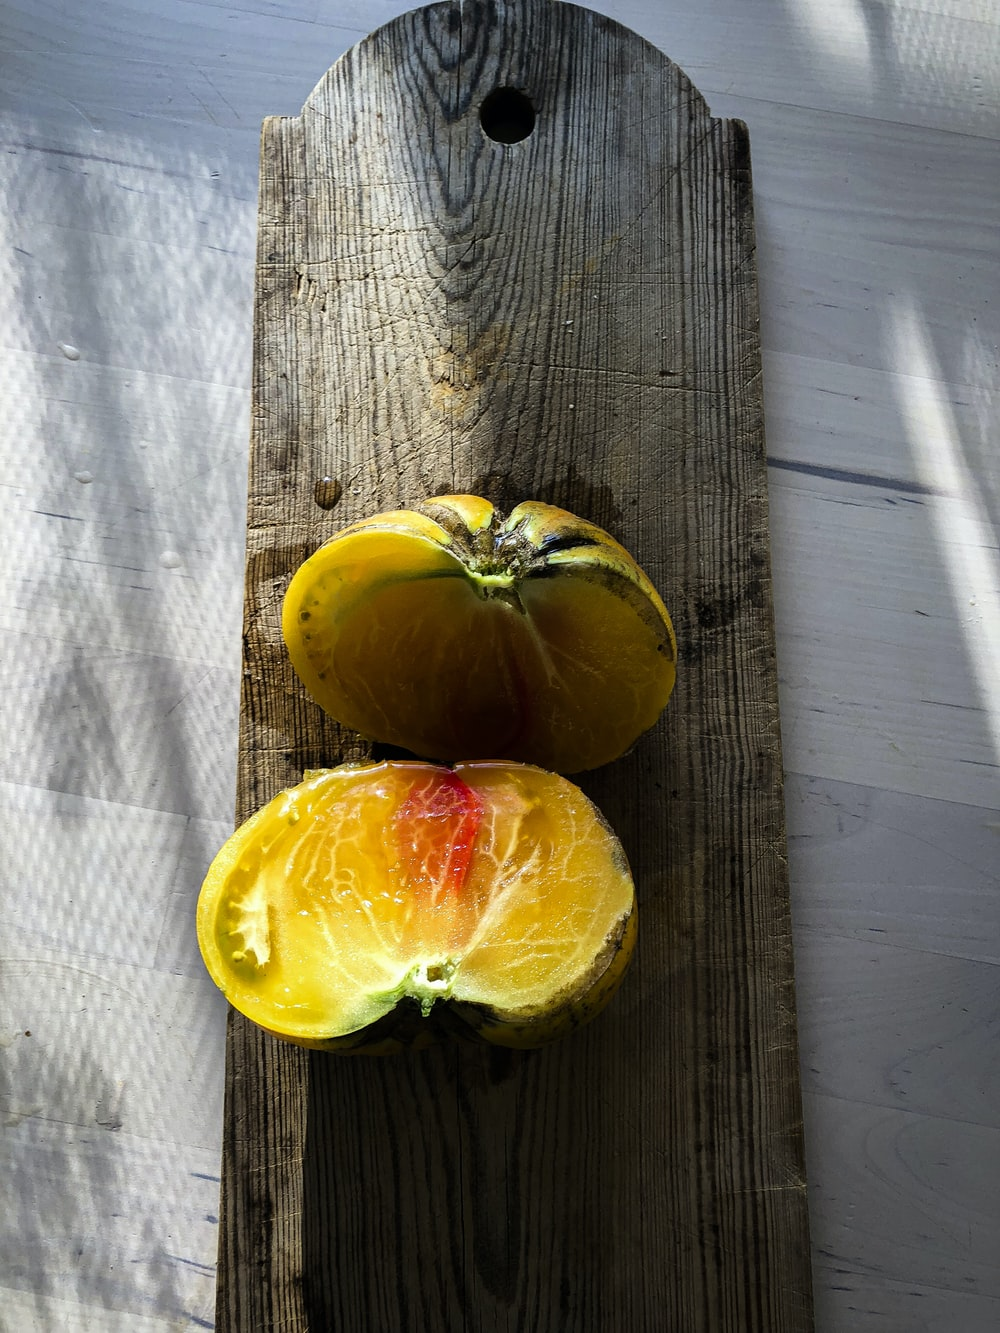 yellow fruit on brown wooden table